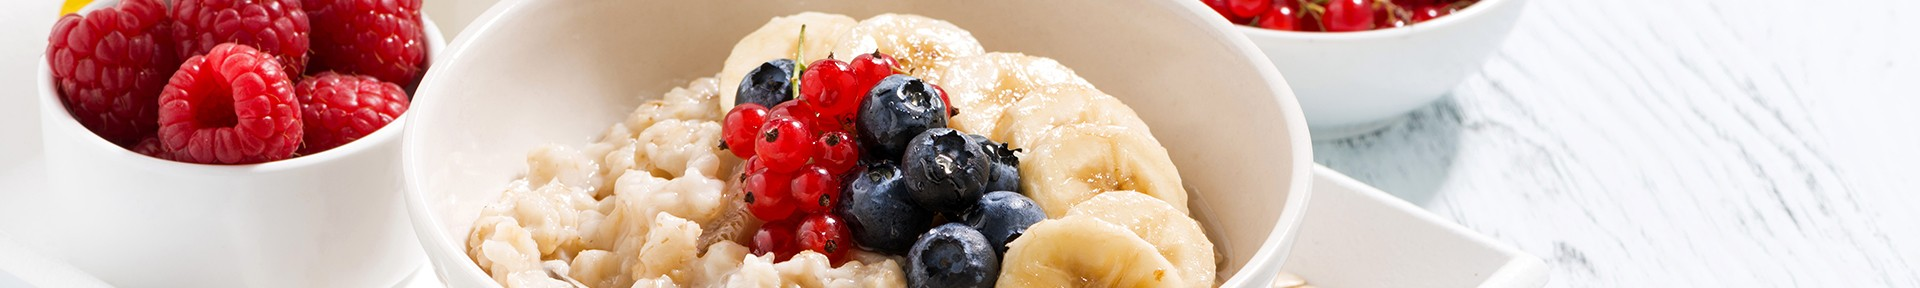 berries and creme oatmeal